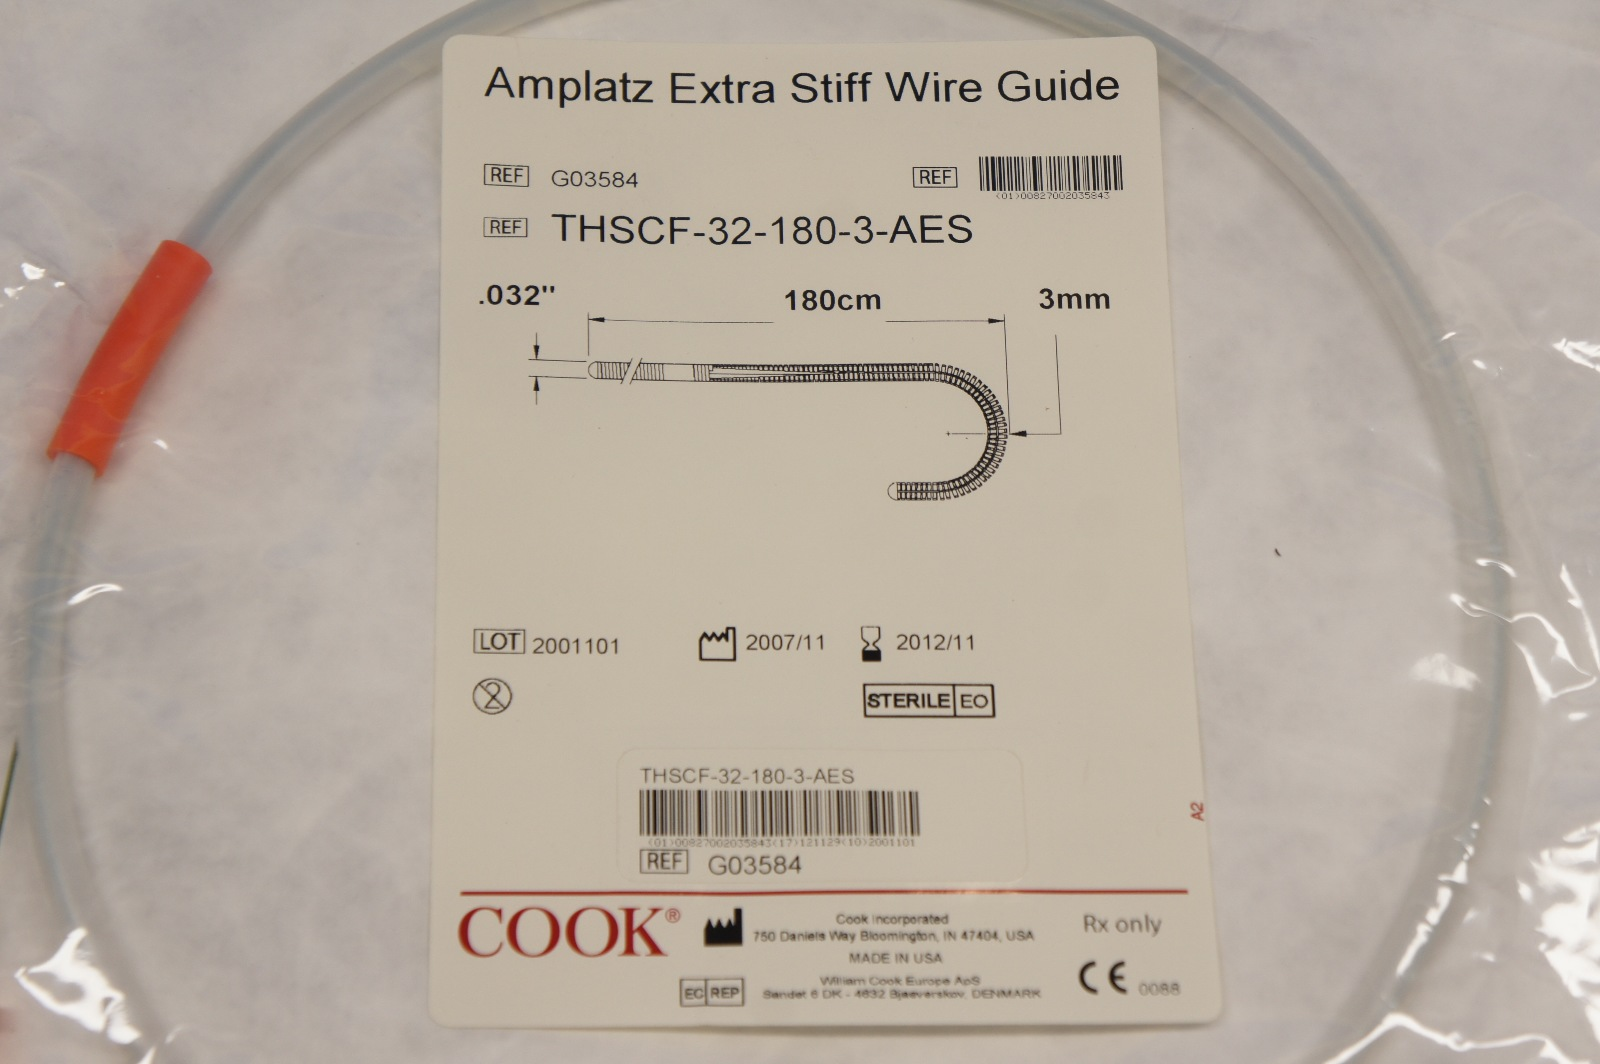 Cook Guide Wires Wire Center 221512w Dual Power Amplifier With Ka2214 Medical G03584 Amplatz Extra Stiff 0 032 X 180cm Rh Ebay Com